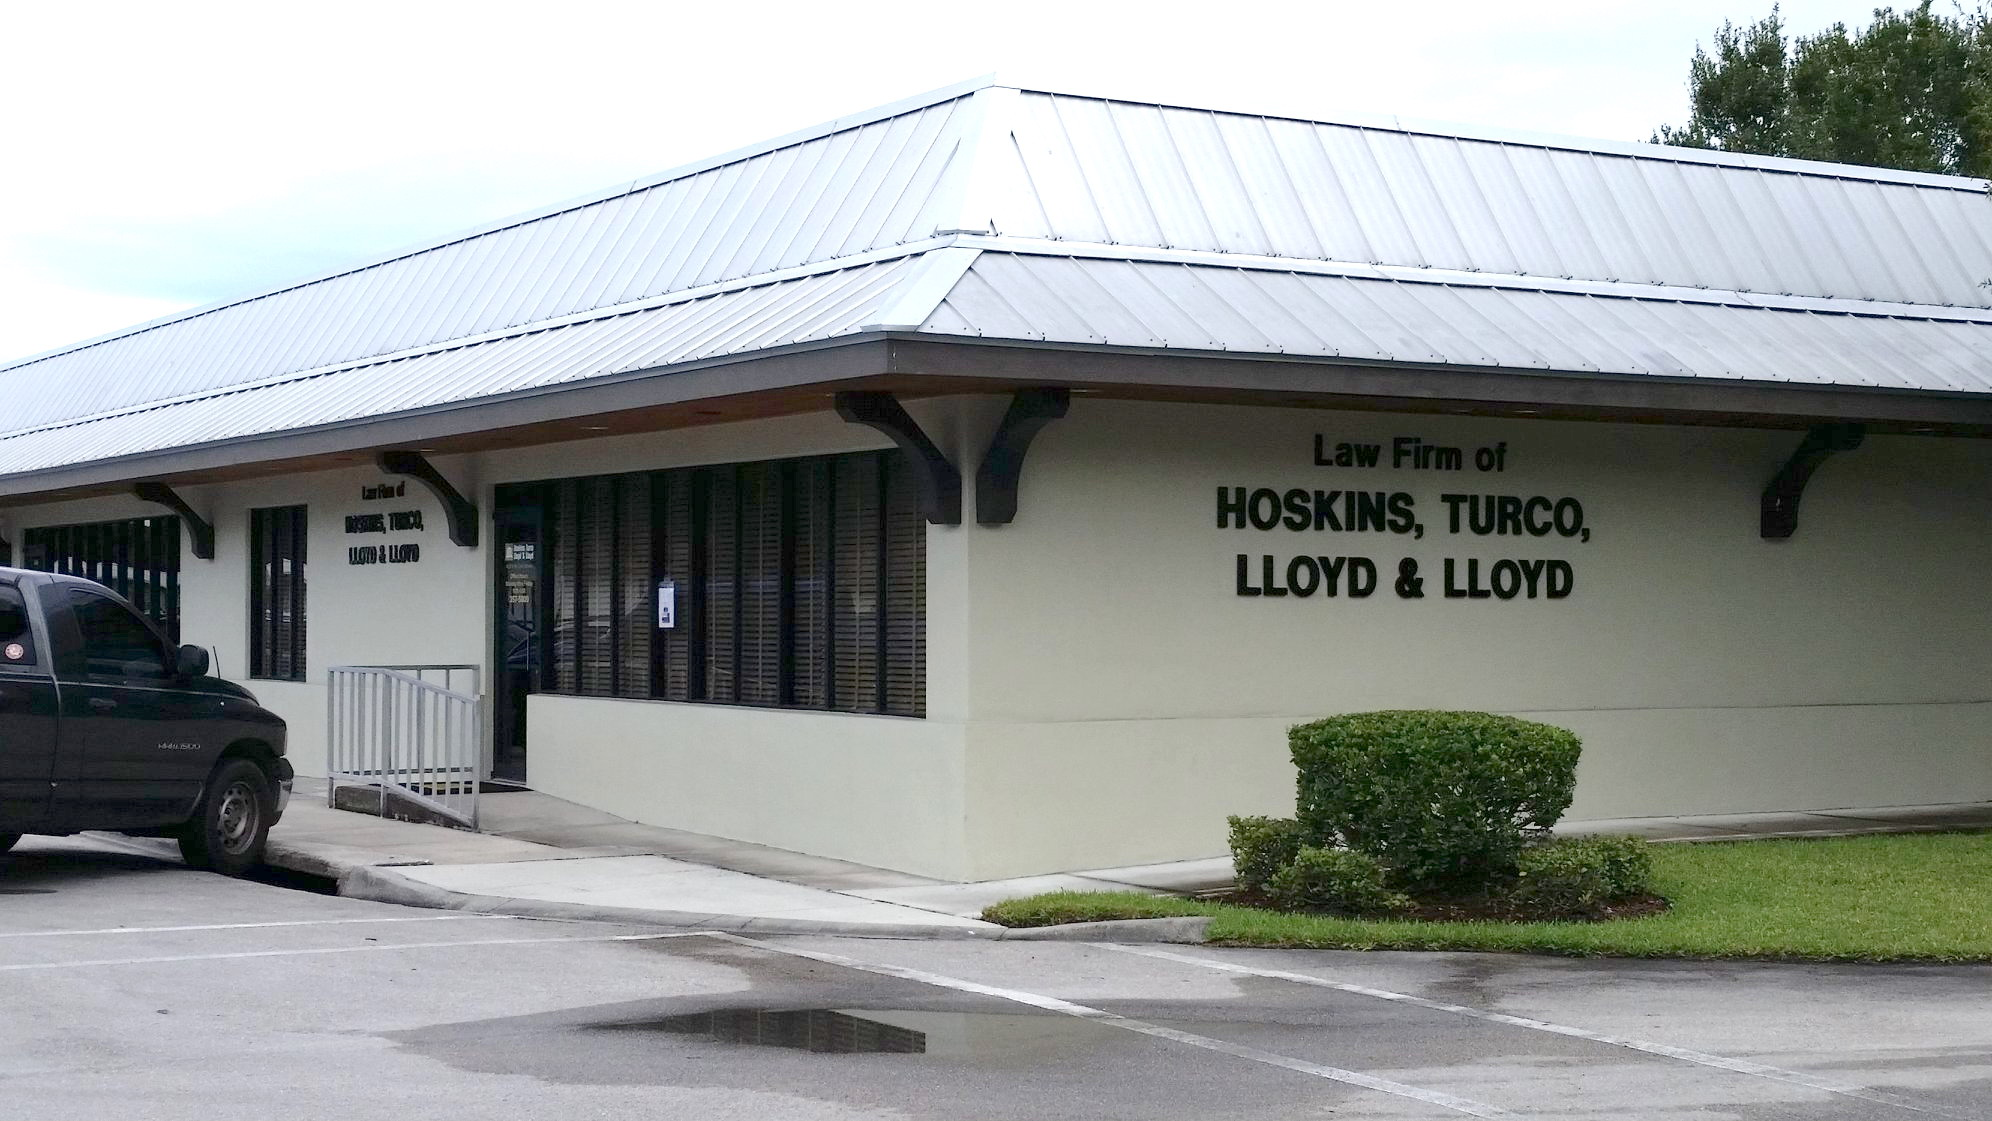 Law Firm of Hoskins Turco Lloyd & Lloyd, Okeechobee reviews | Personal Injury Law at 402 NW 3rd St - Okeechobee FL